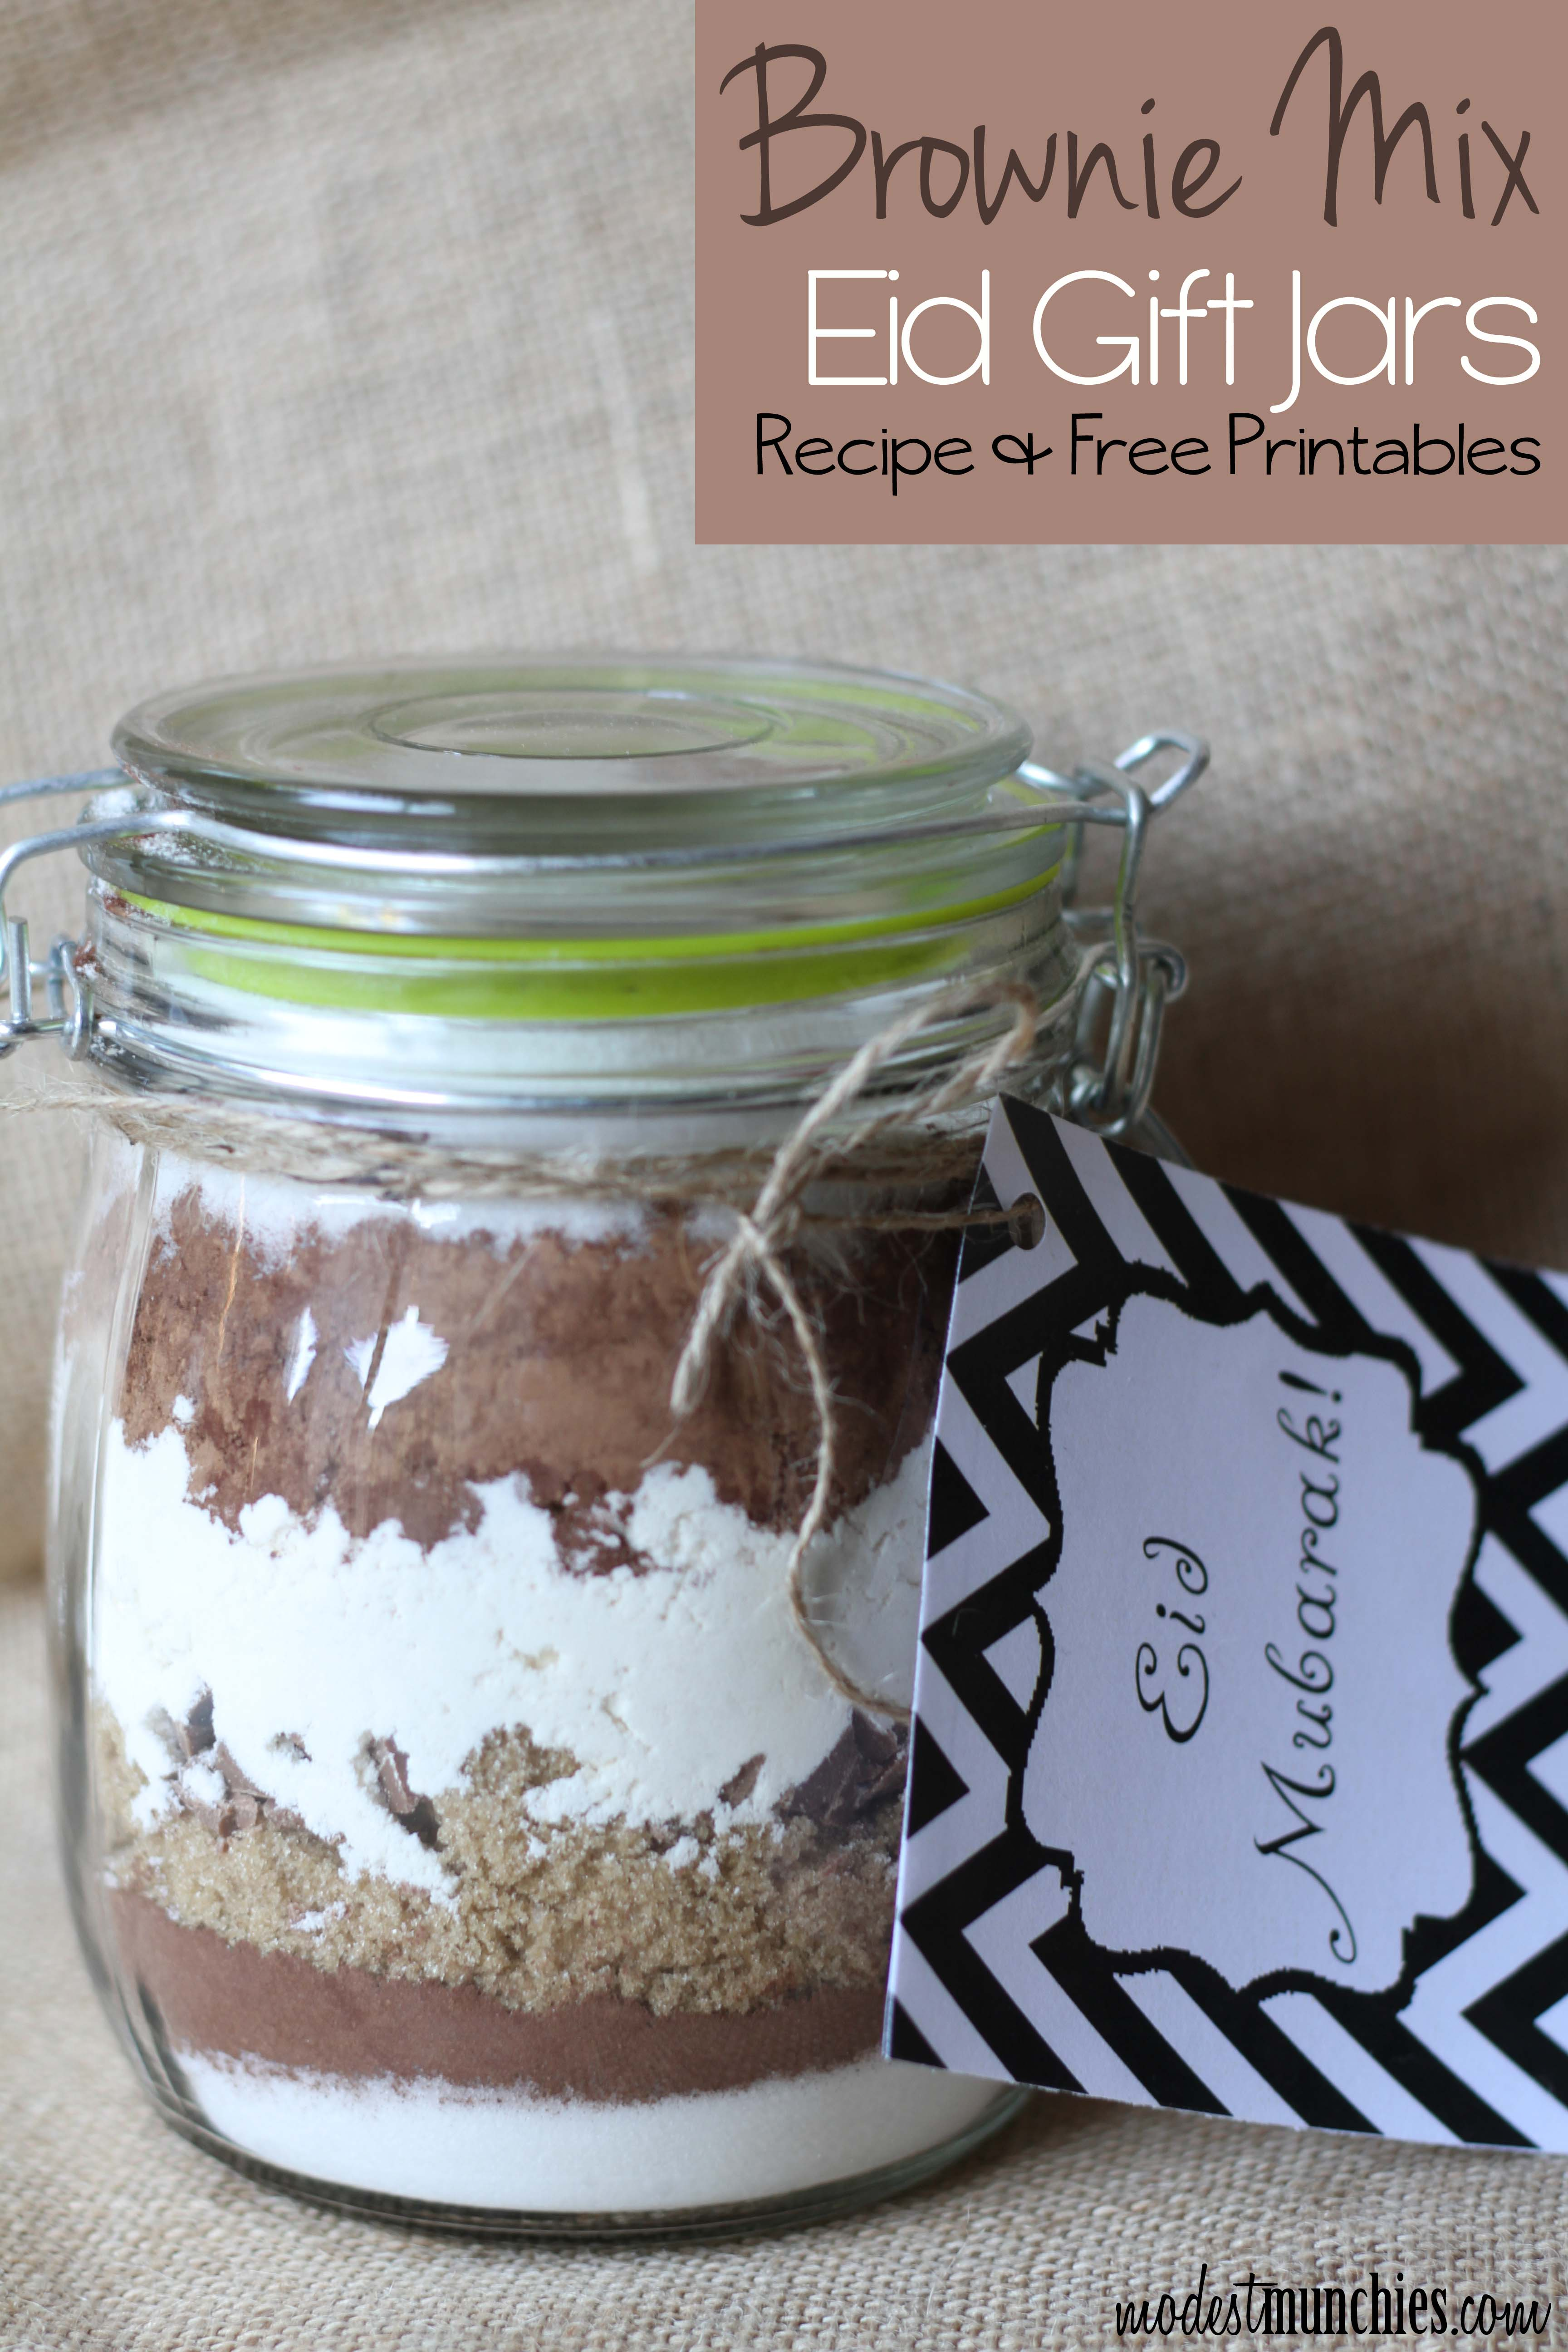 Browniw Mix Eid Gift Jard with Recipe and Free Printables